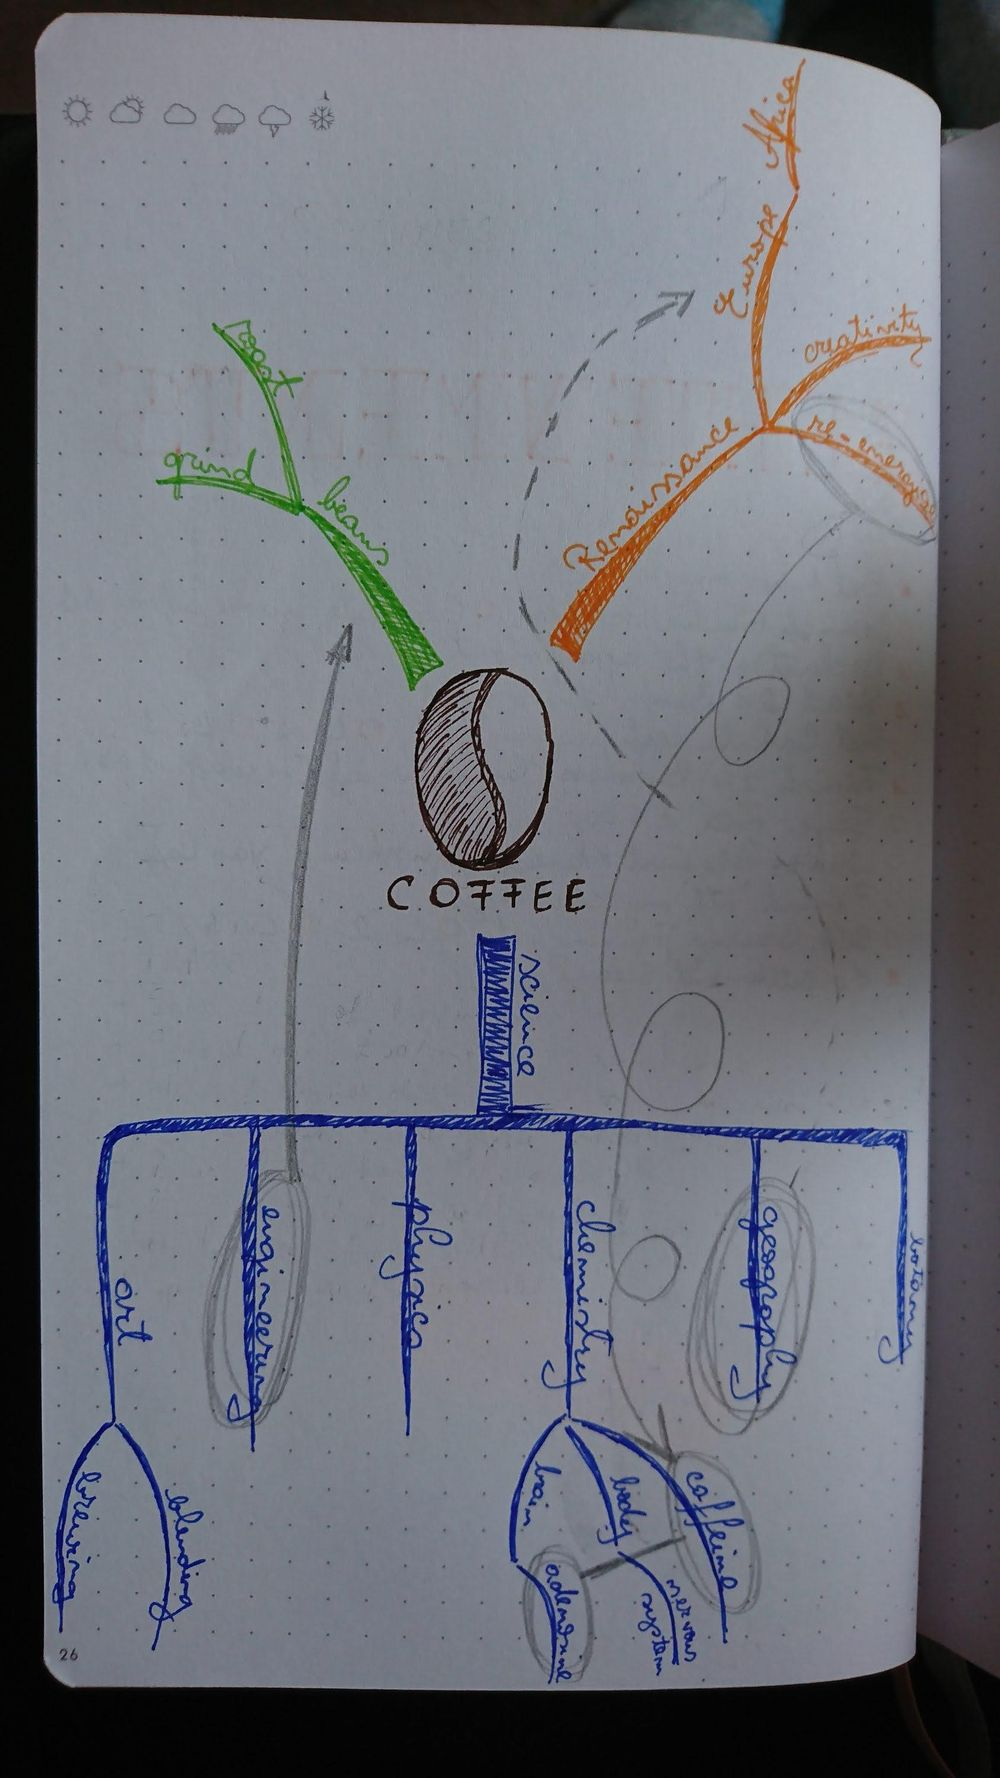 Mind Map about Coffee - image 1 - student project